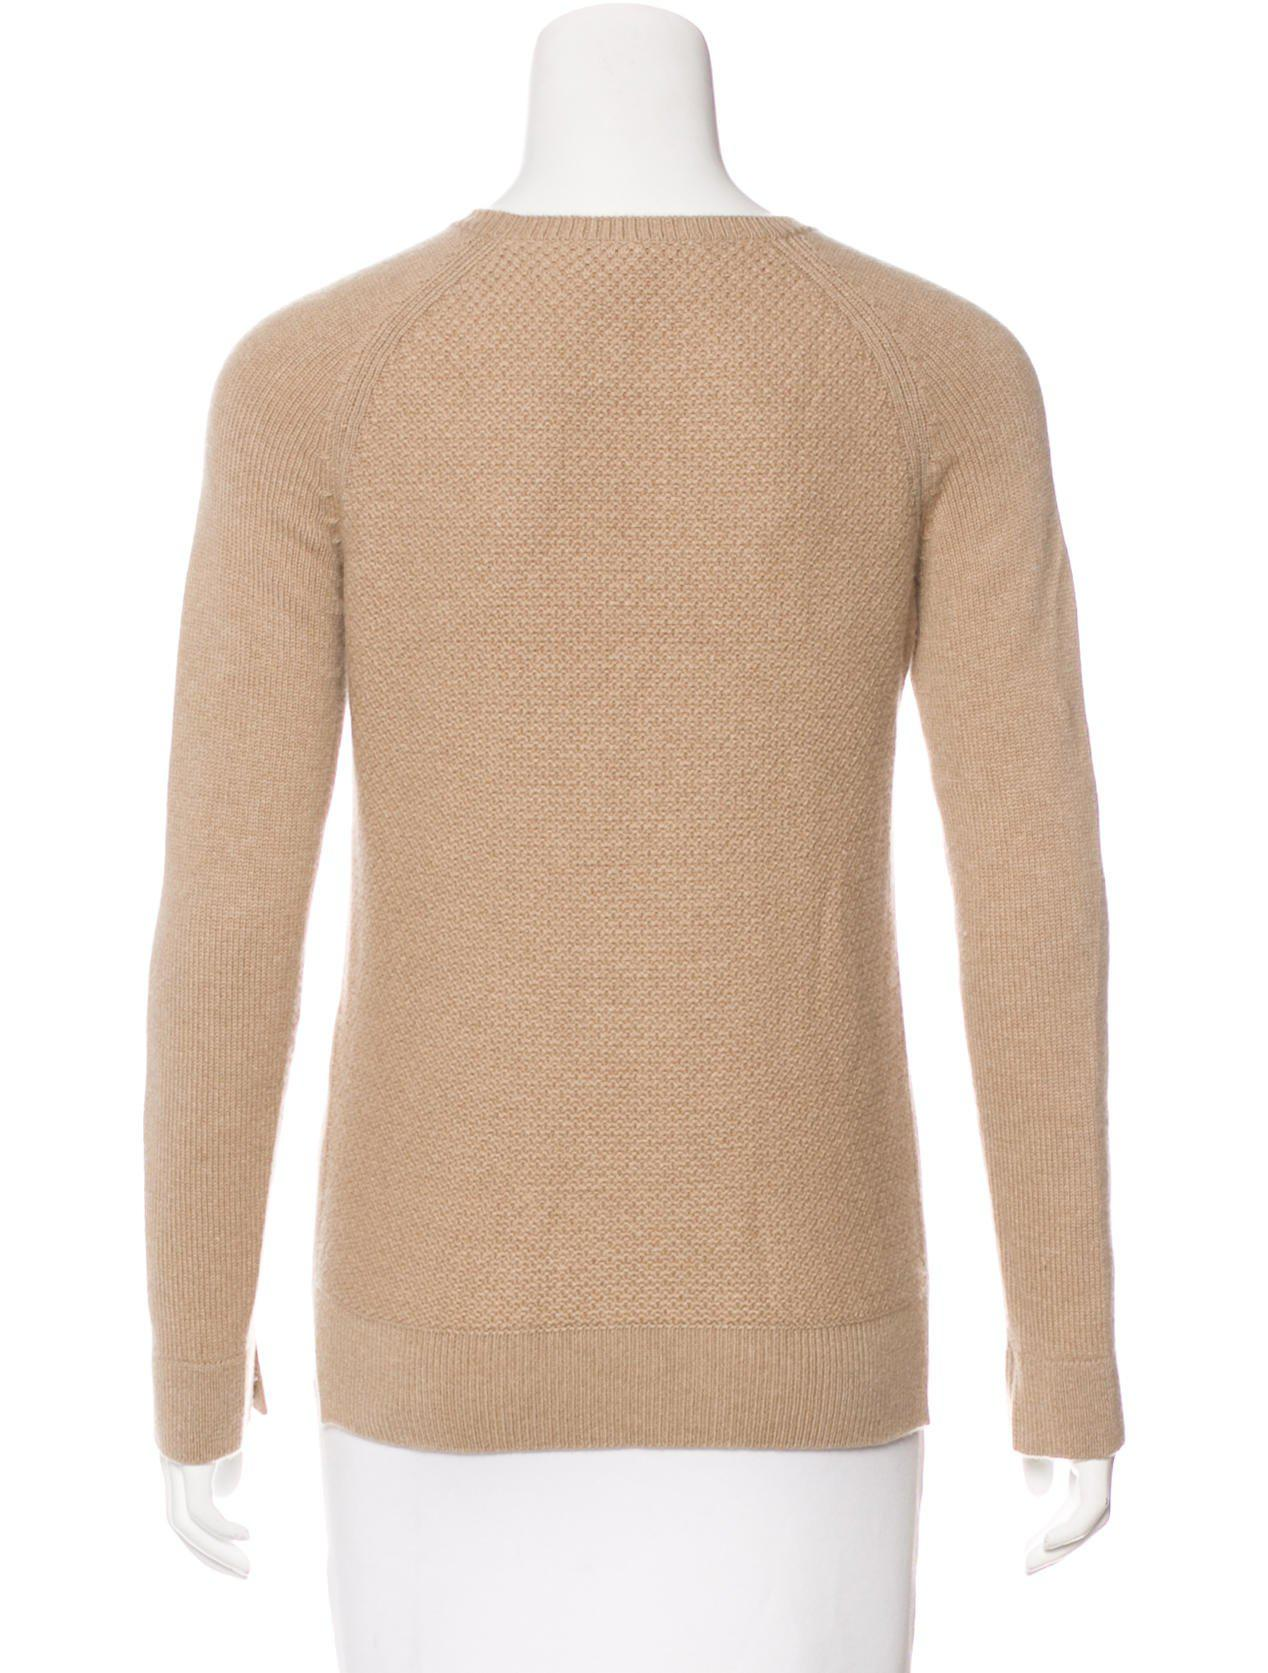 0fdb895afe64 Lyst - Loro Piana Baby Cashmere Crew Neck Sweater Neutrals in Natural